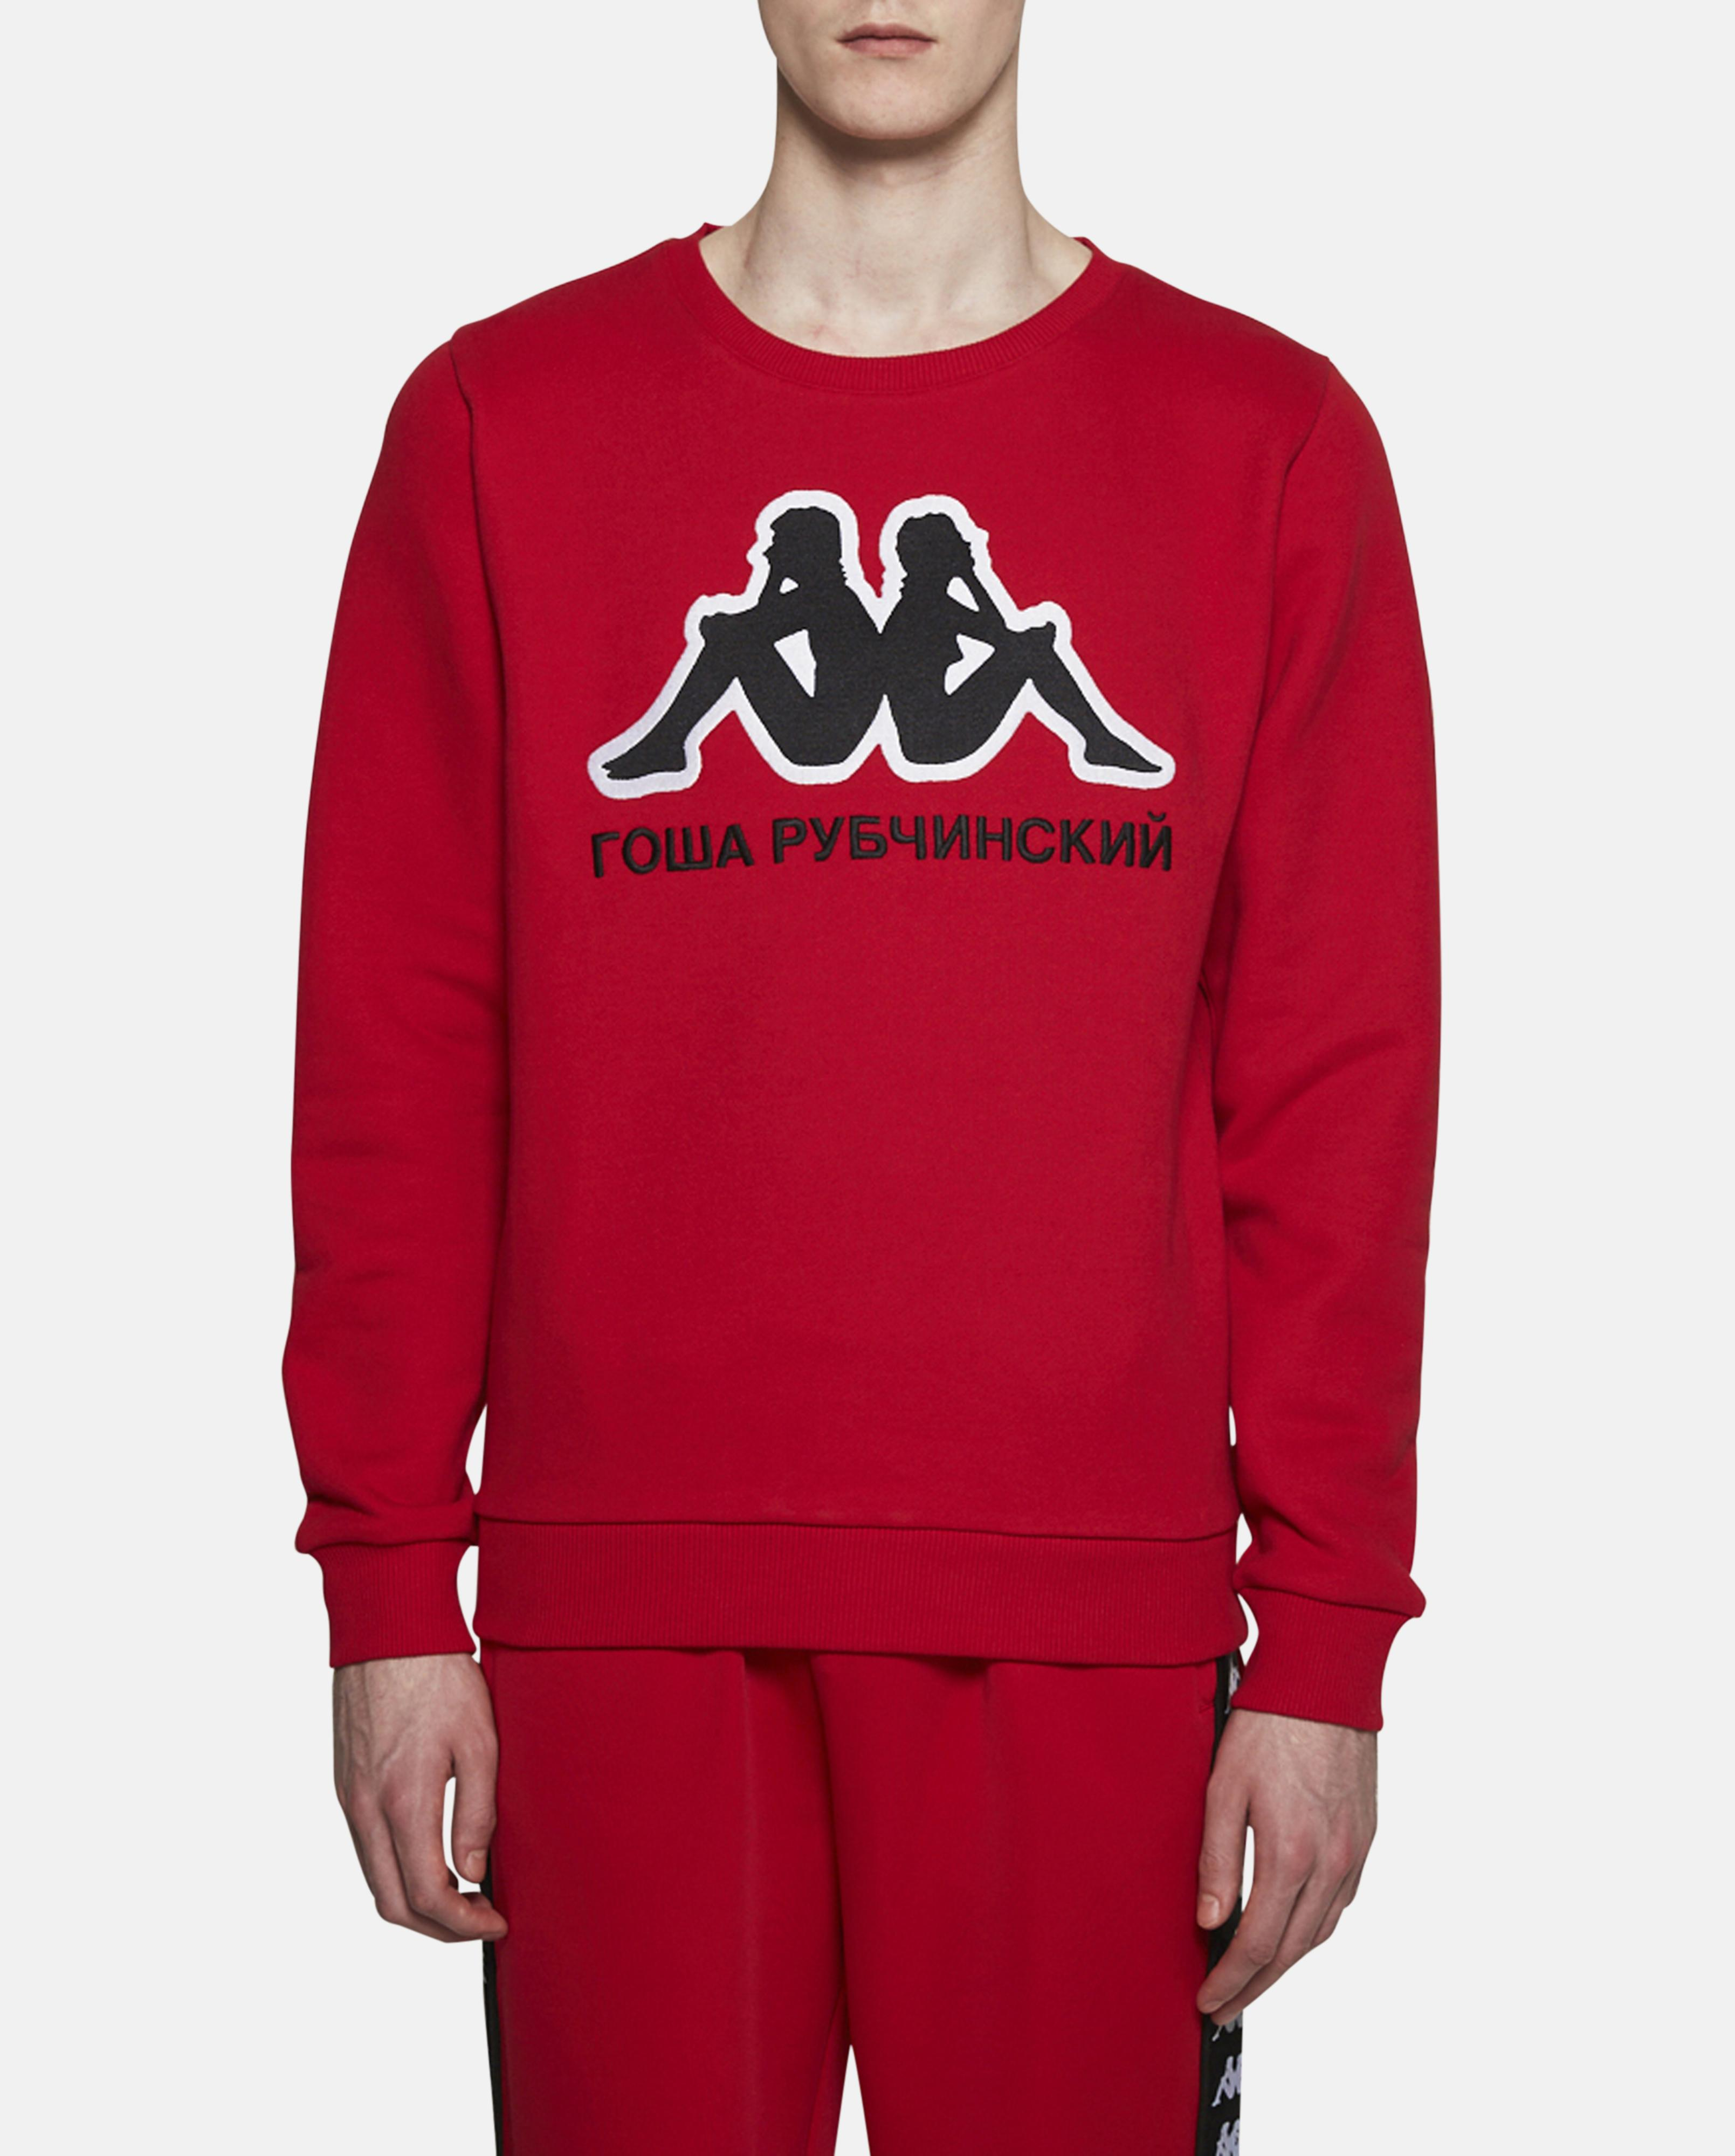 d0384b57deb0 Gosha Rubchinskiy Kappa Cotton-jersey Sweatshirt in Red for Men - Lyst